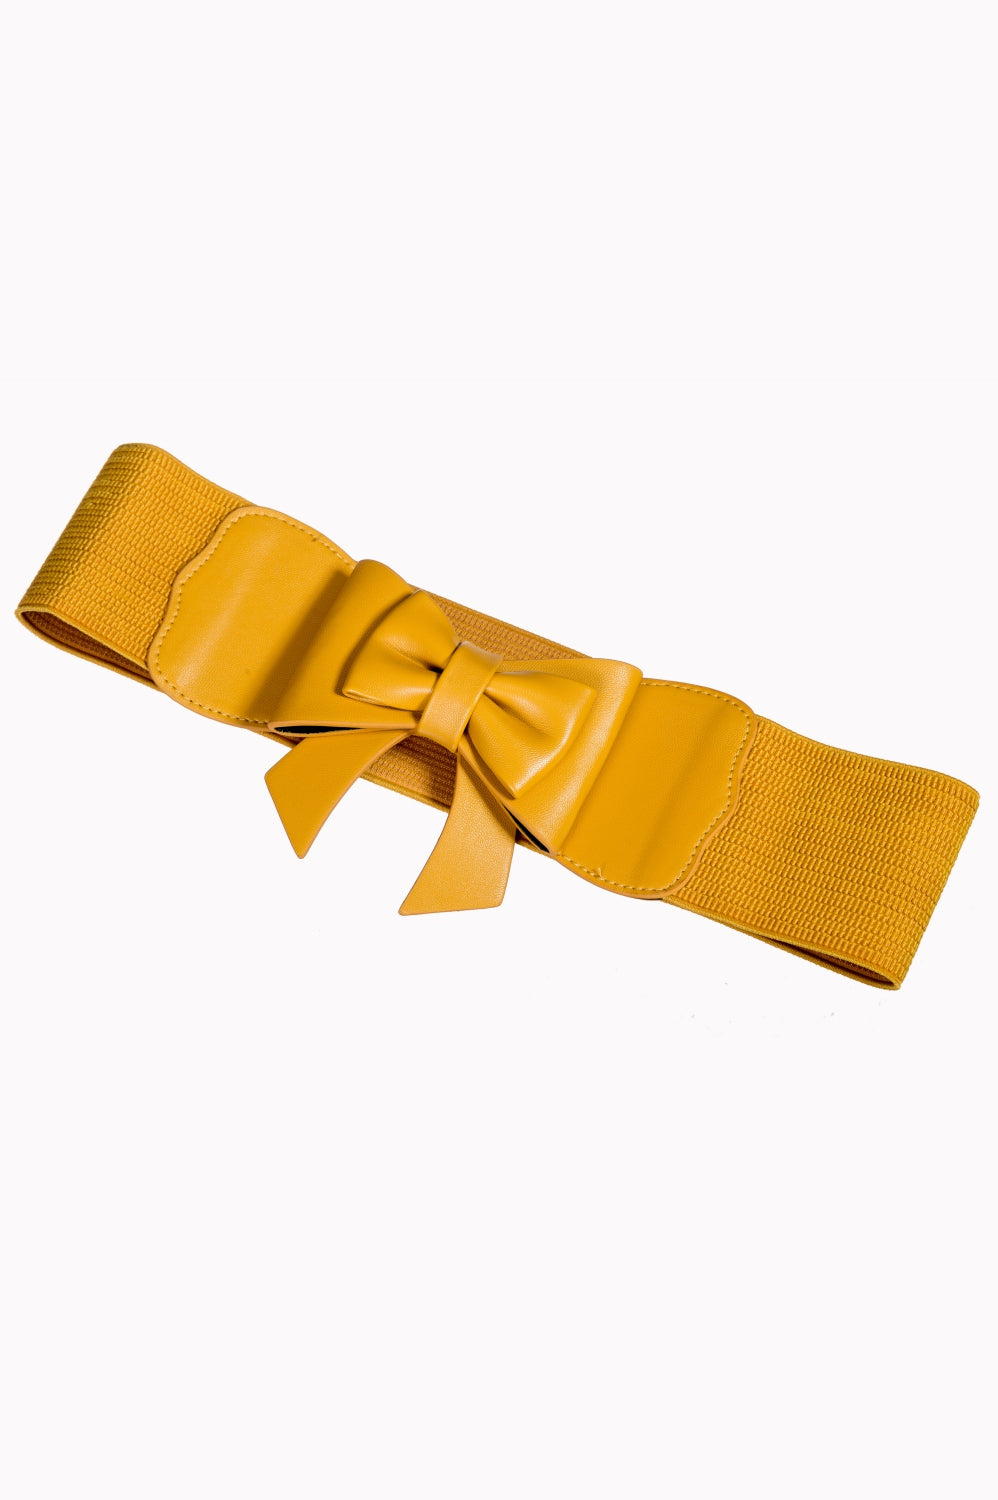 Dancing Days 50s Style Retro Elasticated Belt With Bow In Mustard Yellow; Dancing Days; 50s Retro Style; Elasticated Belt; Mustard Yellow Bow Design; Yellow